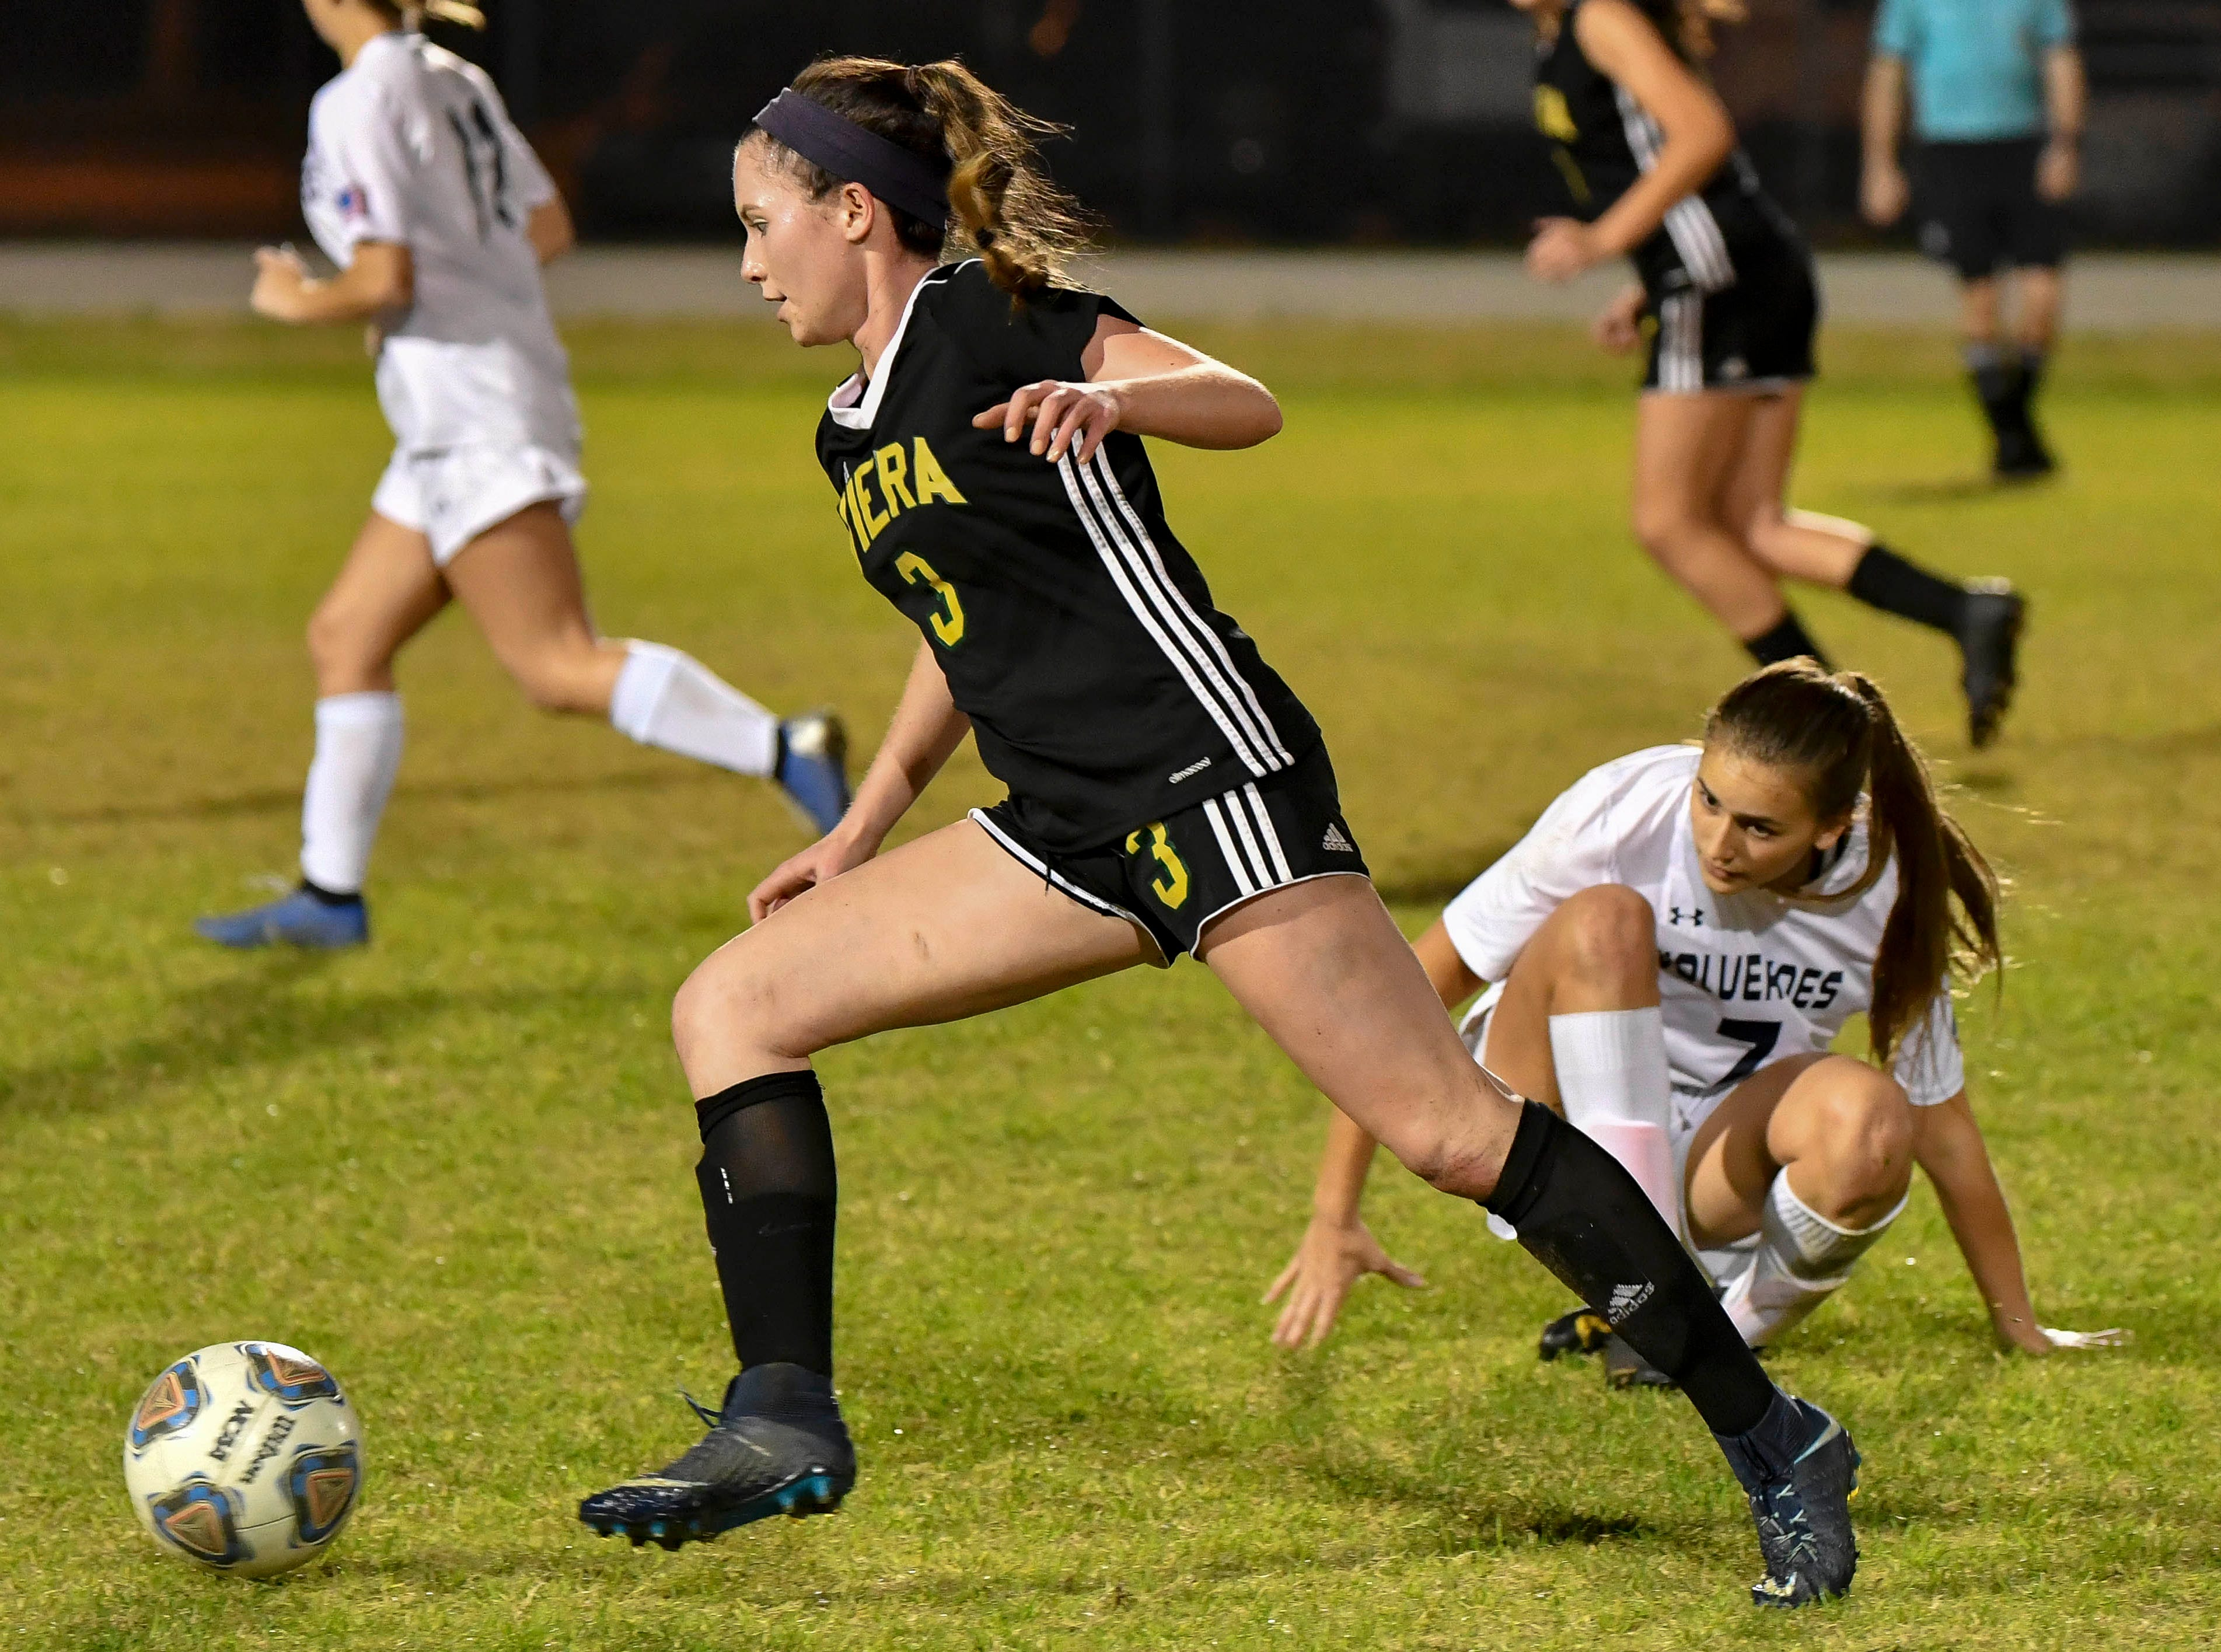 Taylor Collins of Viera drives around Miya Skretteberg of Windermere during Tuesday's Regional Quarterfinal game at Viera High School